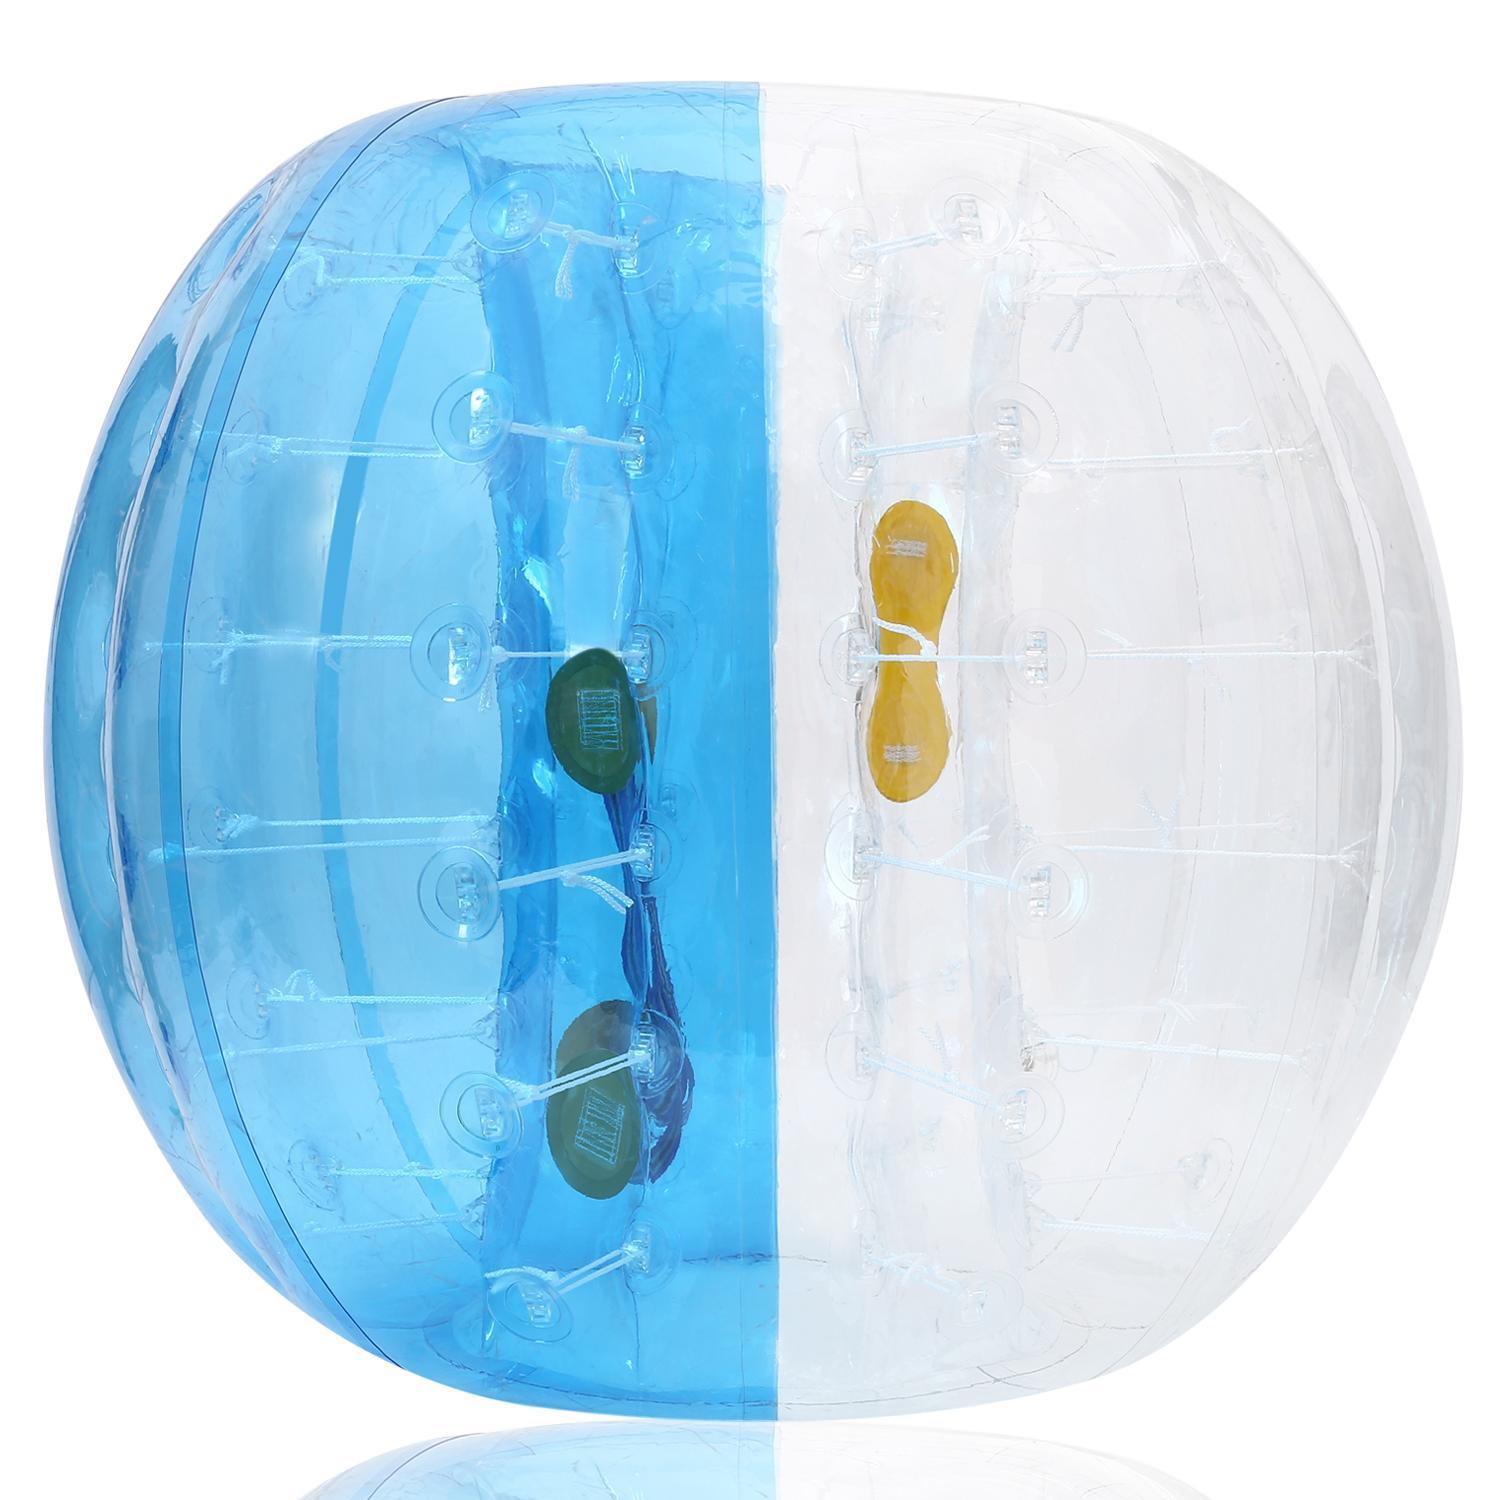 Studiostore Bumper Ball Human Bubble Soccer Football Adults and Kids STDTE by